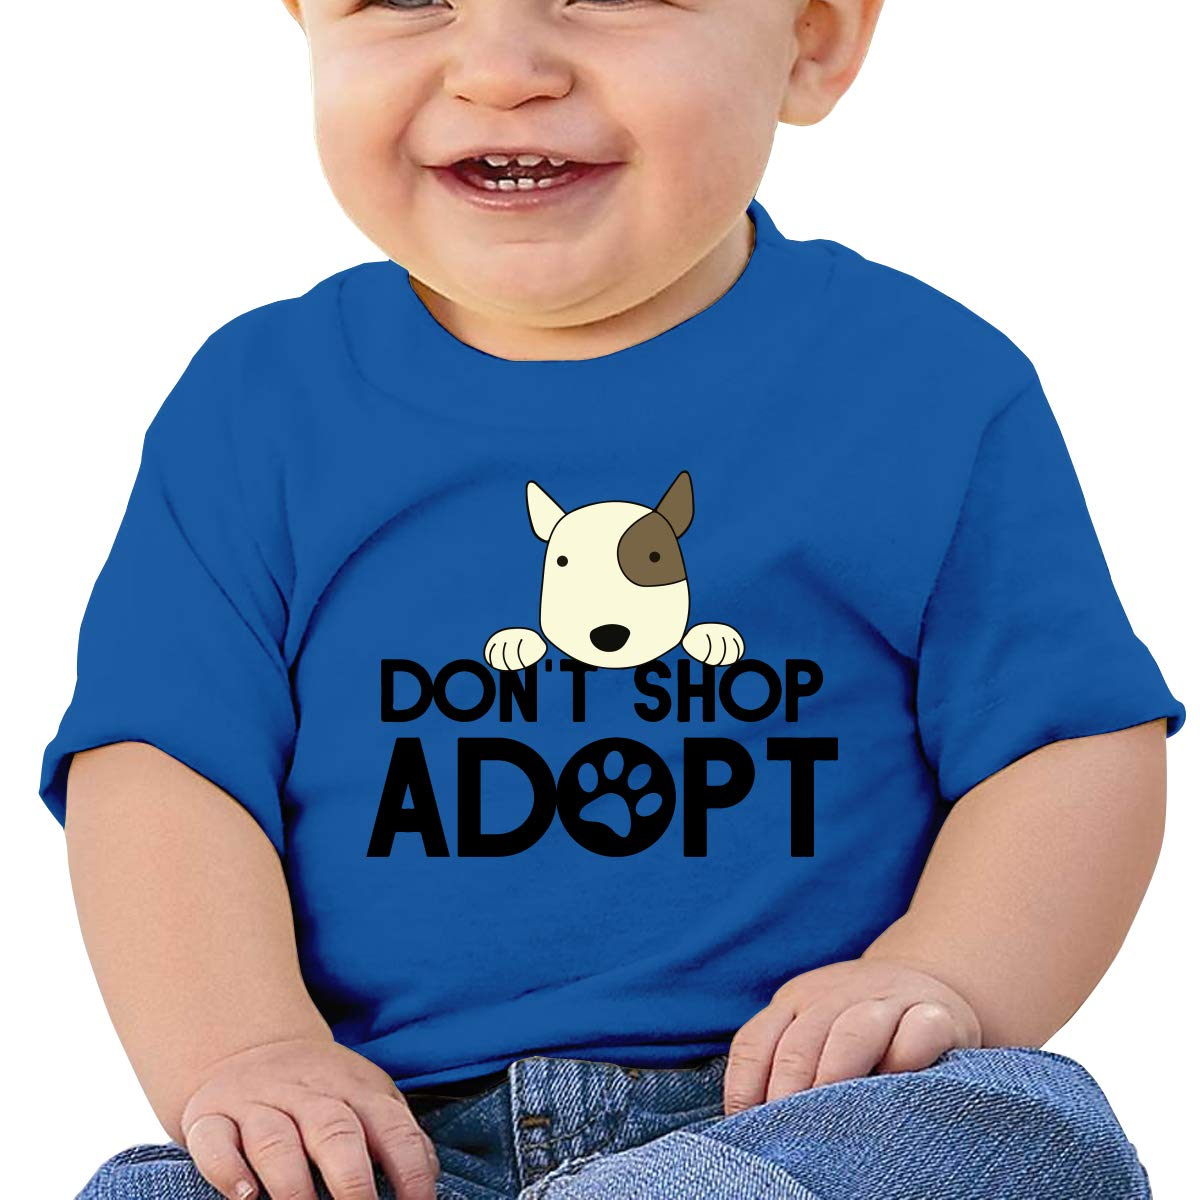 XHX403 Dont Shop Adopt Infant Kids T Shirt Cotton Tee Toddler Baby 6-18M